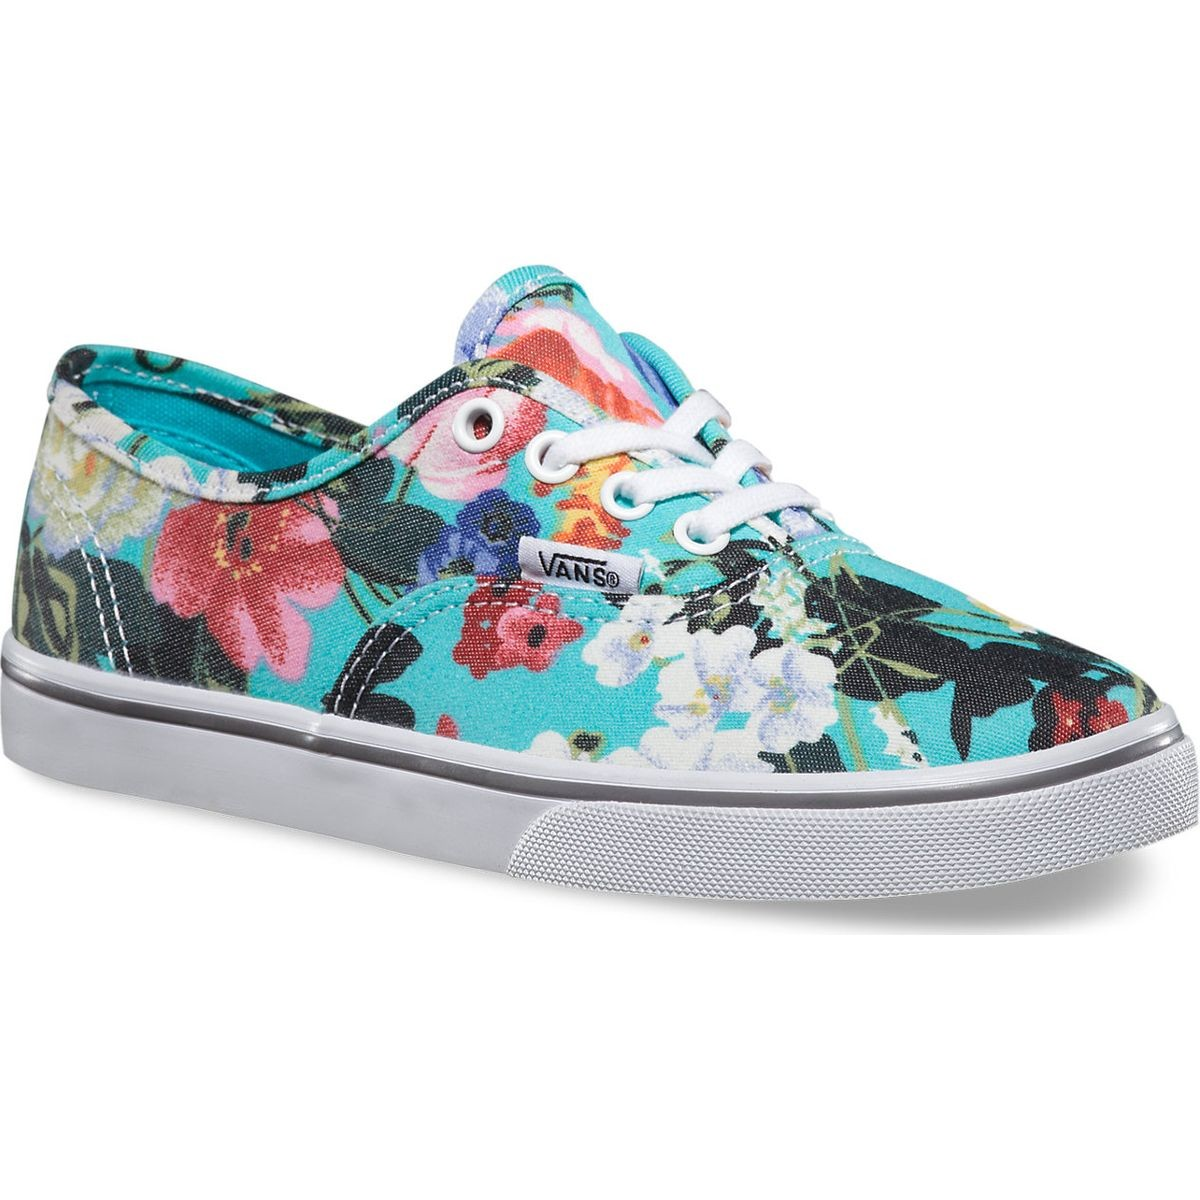 4529f9081bdef2 Vans Authentic Lo Pro Floral Youth Shoes - Smoked Pearl True White - 4Y